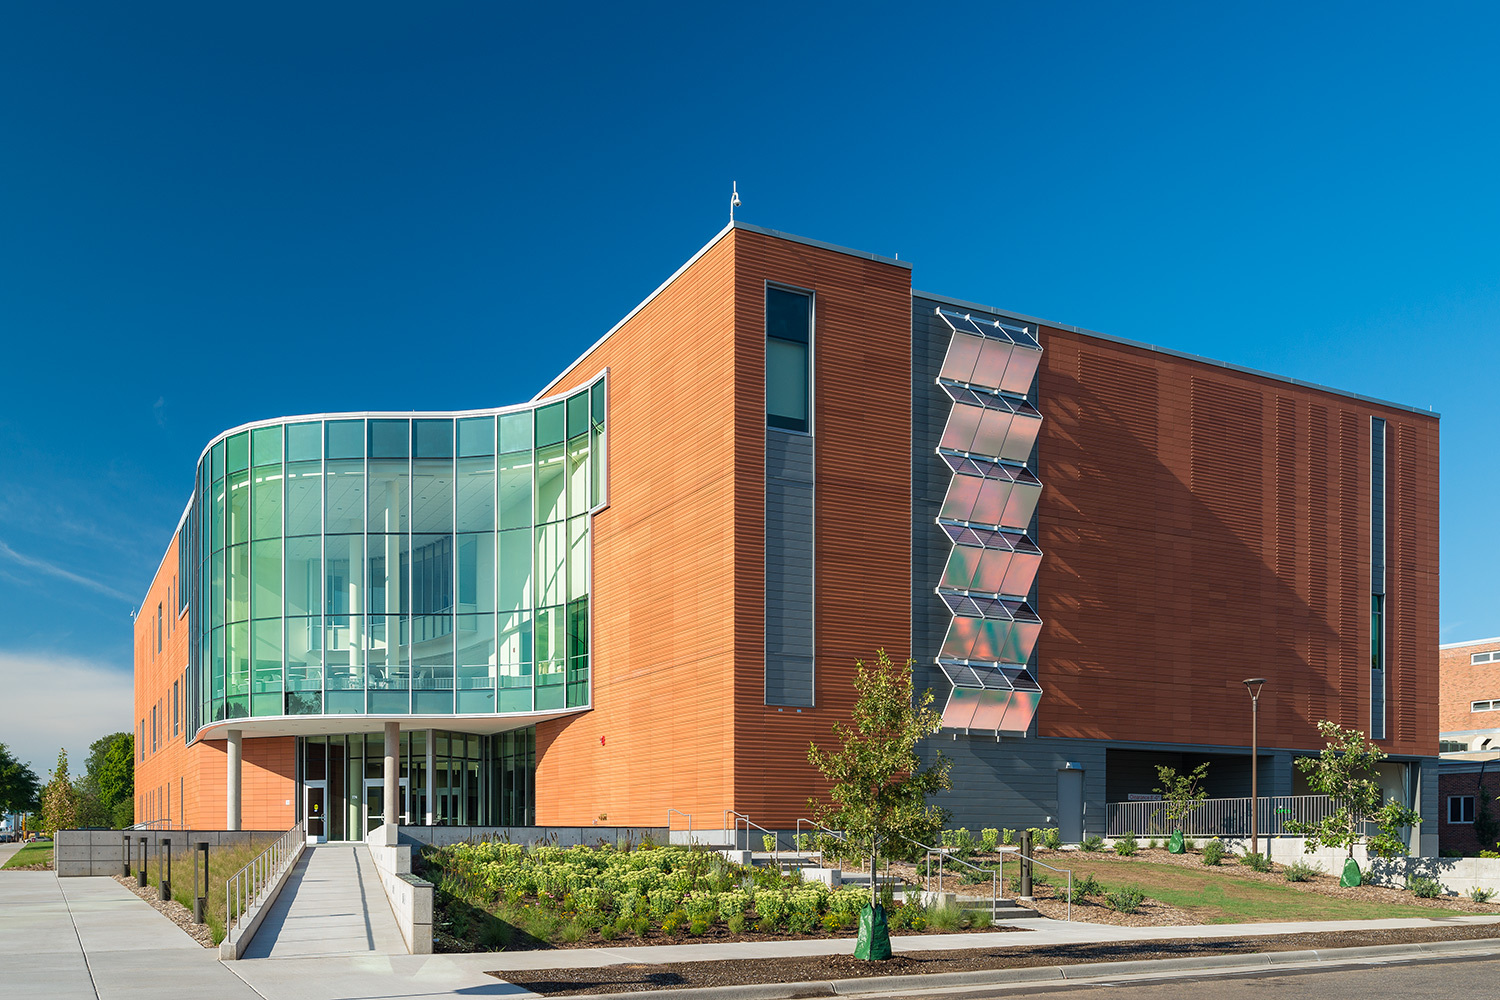 Anderson Center at Binghamton